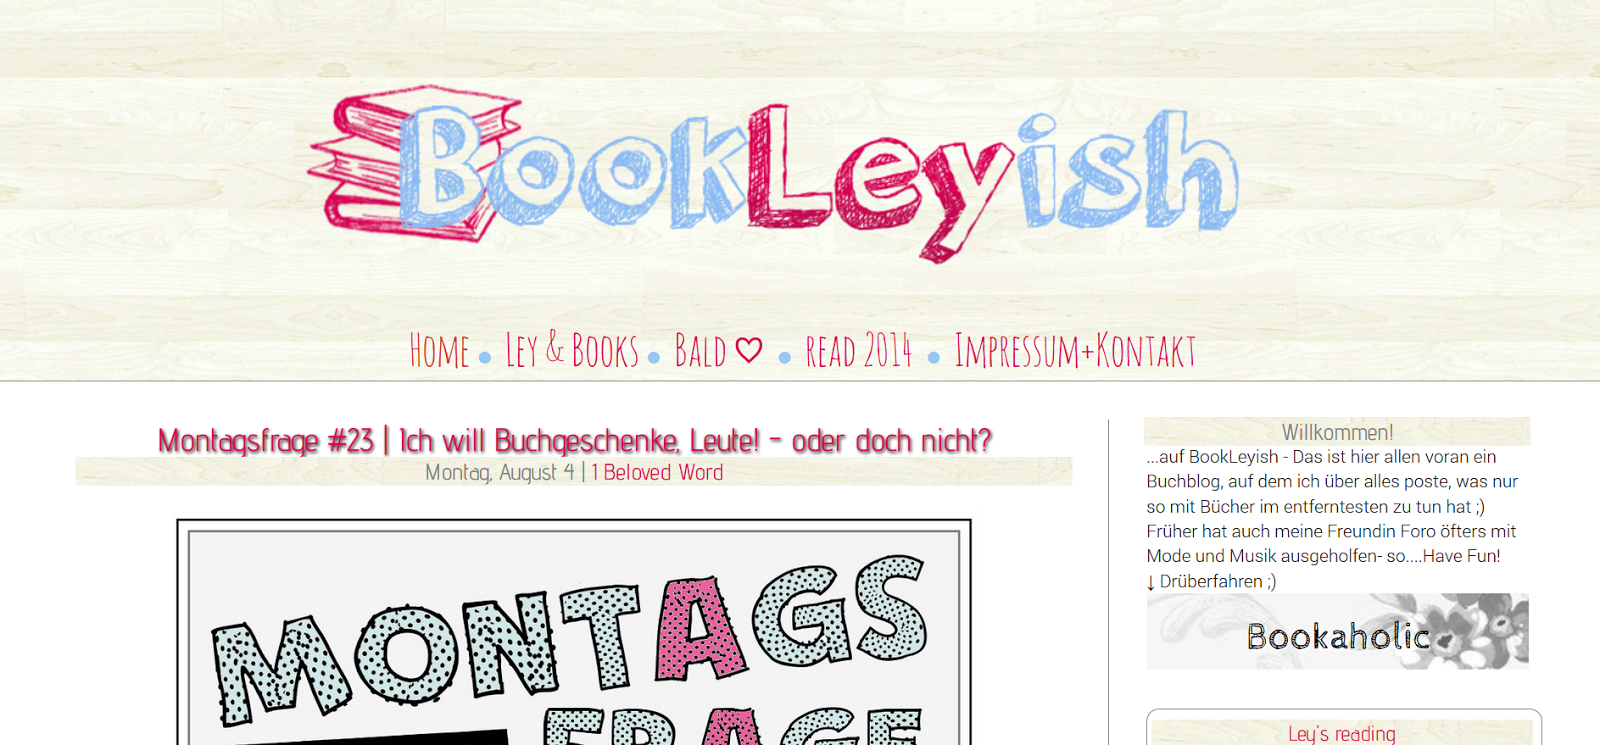 http://book-and-shoppaholics.blogspot.de/